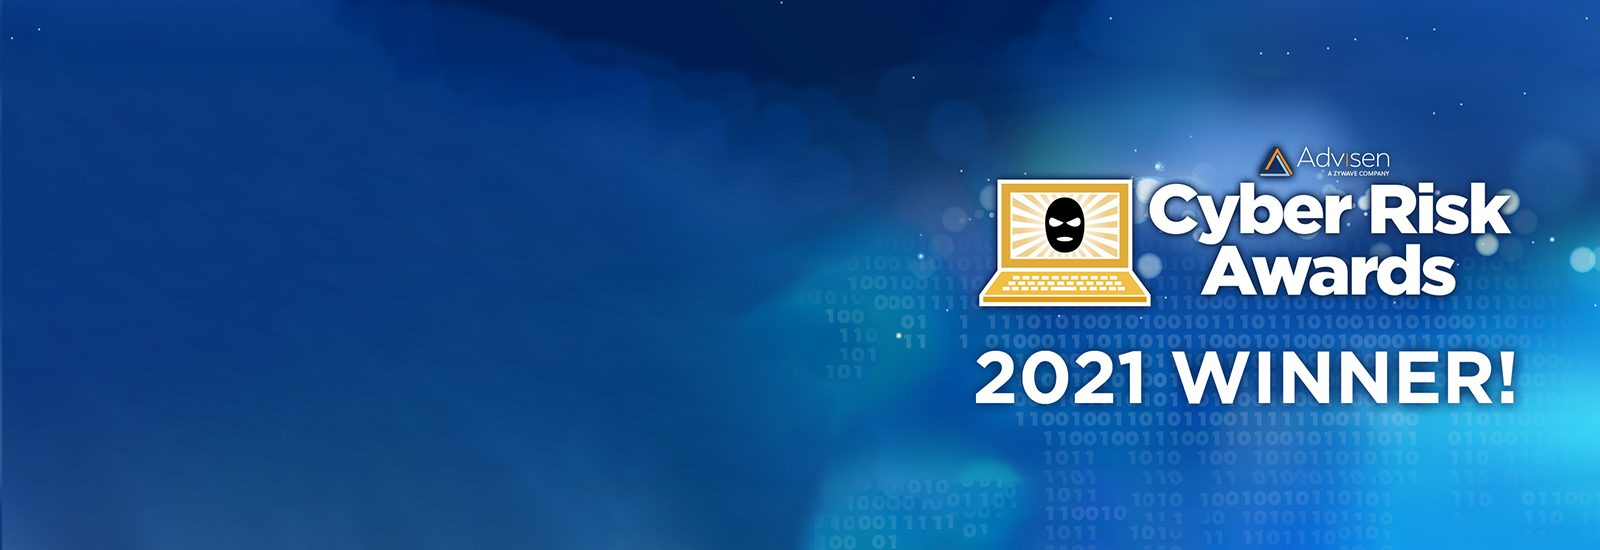 Johnson, Kendall & Johnson Awarded 2021 Cyber Risk Retail  Broking Team of the Year from Advisen